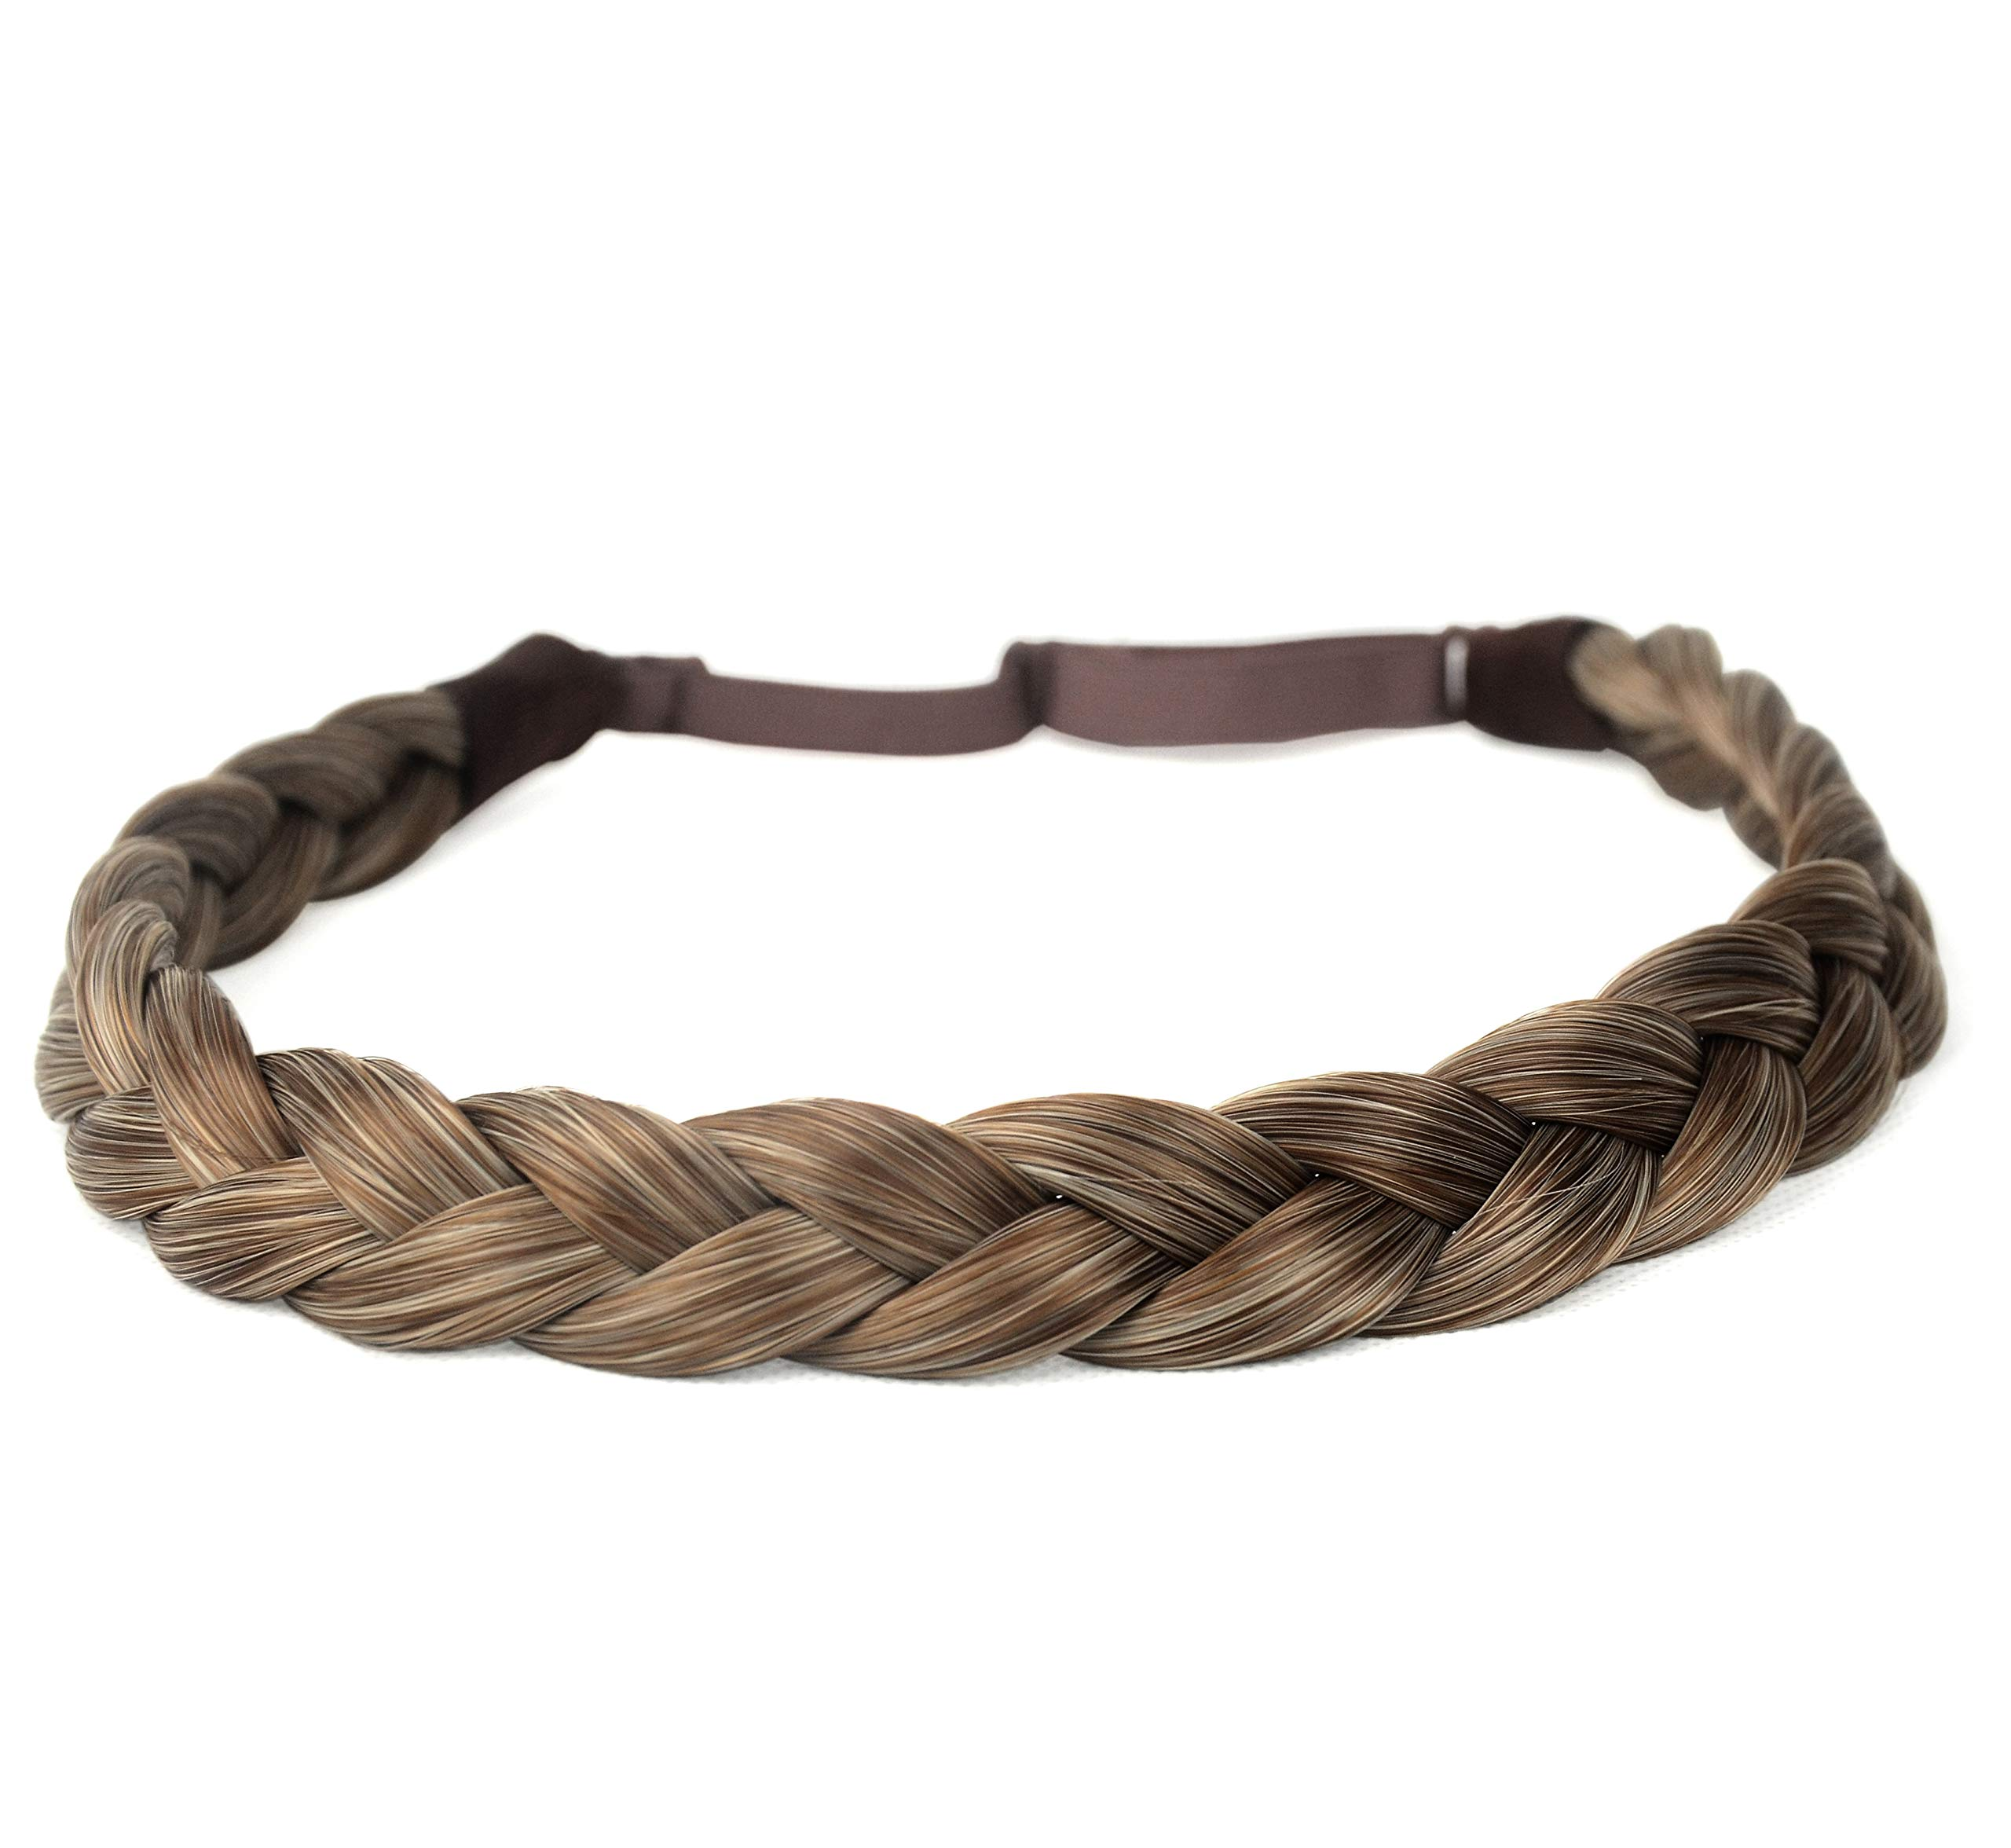 DIGUAN Synthetic Hair Braided Headband Classic Chunky Wide Plaited Braids Elastic Stretch Hairpiece Women Girl Beauty accessory, 55g aHairBeauty (#Caramel Blonde) by DIGUAN (TM)